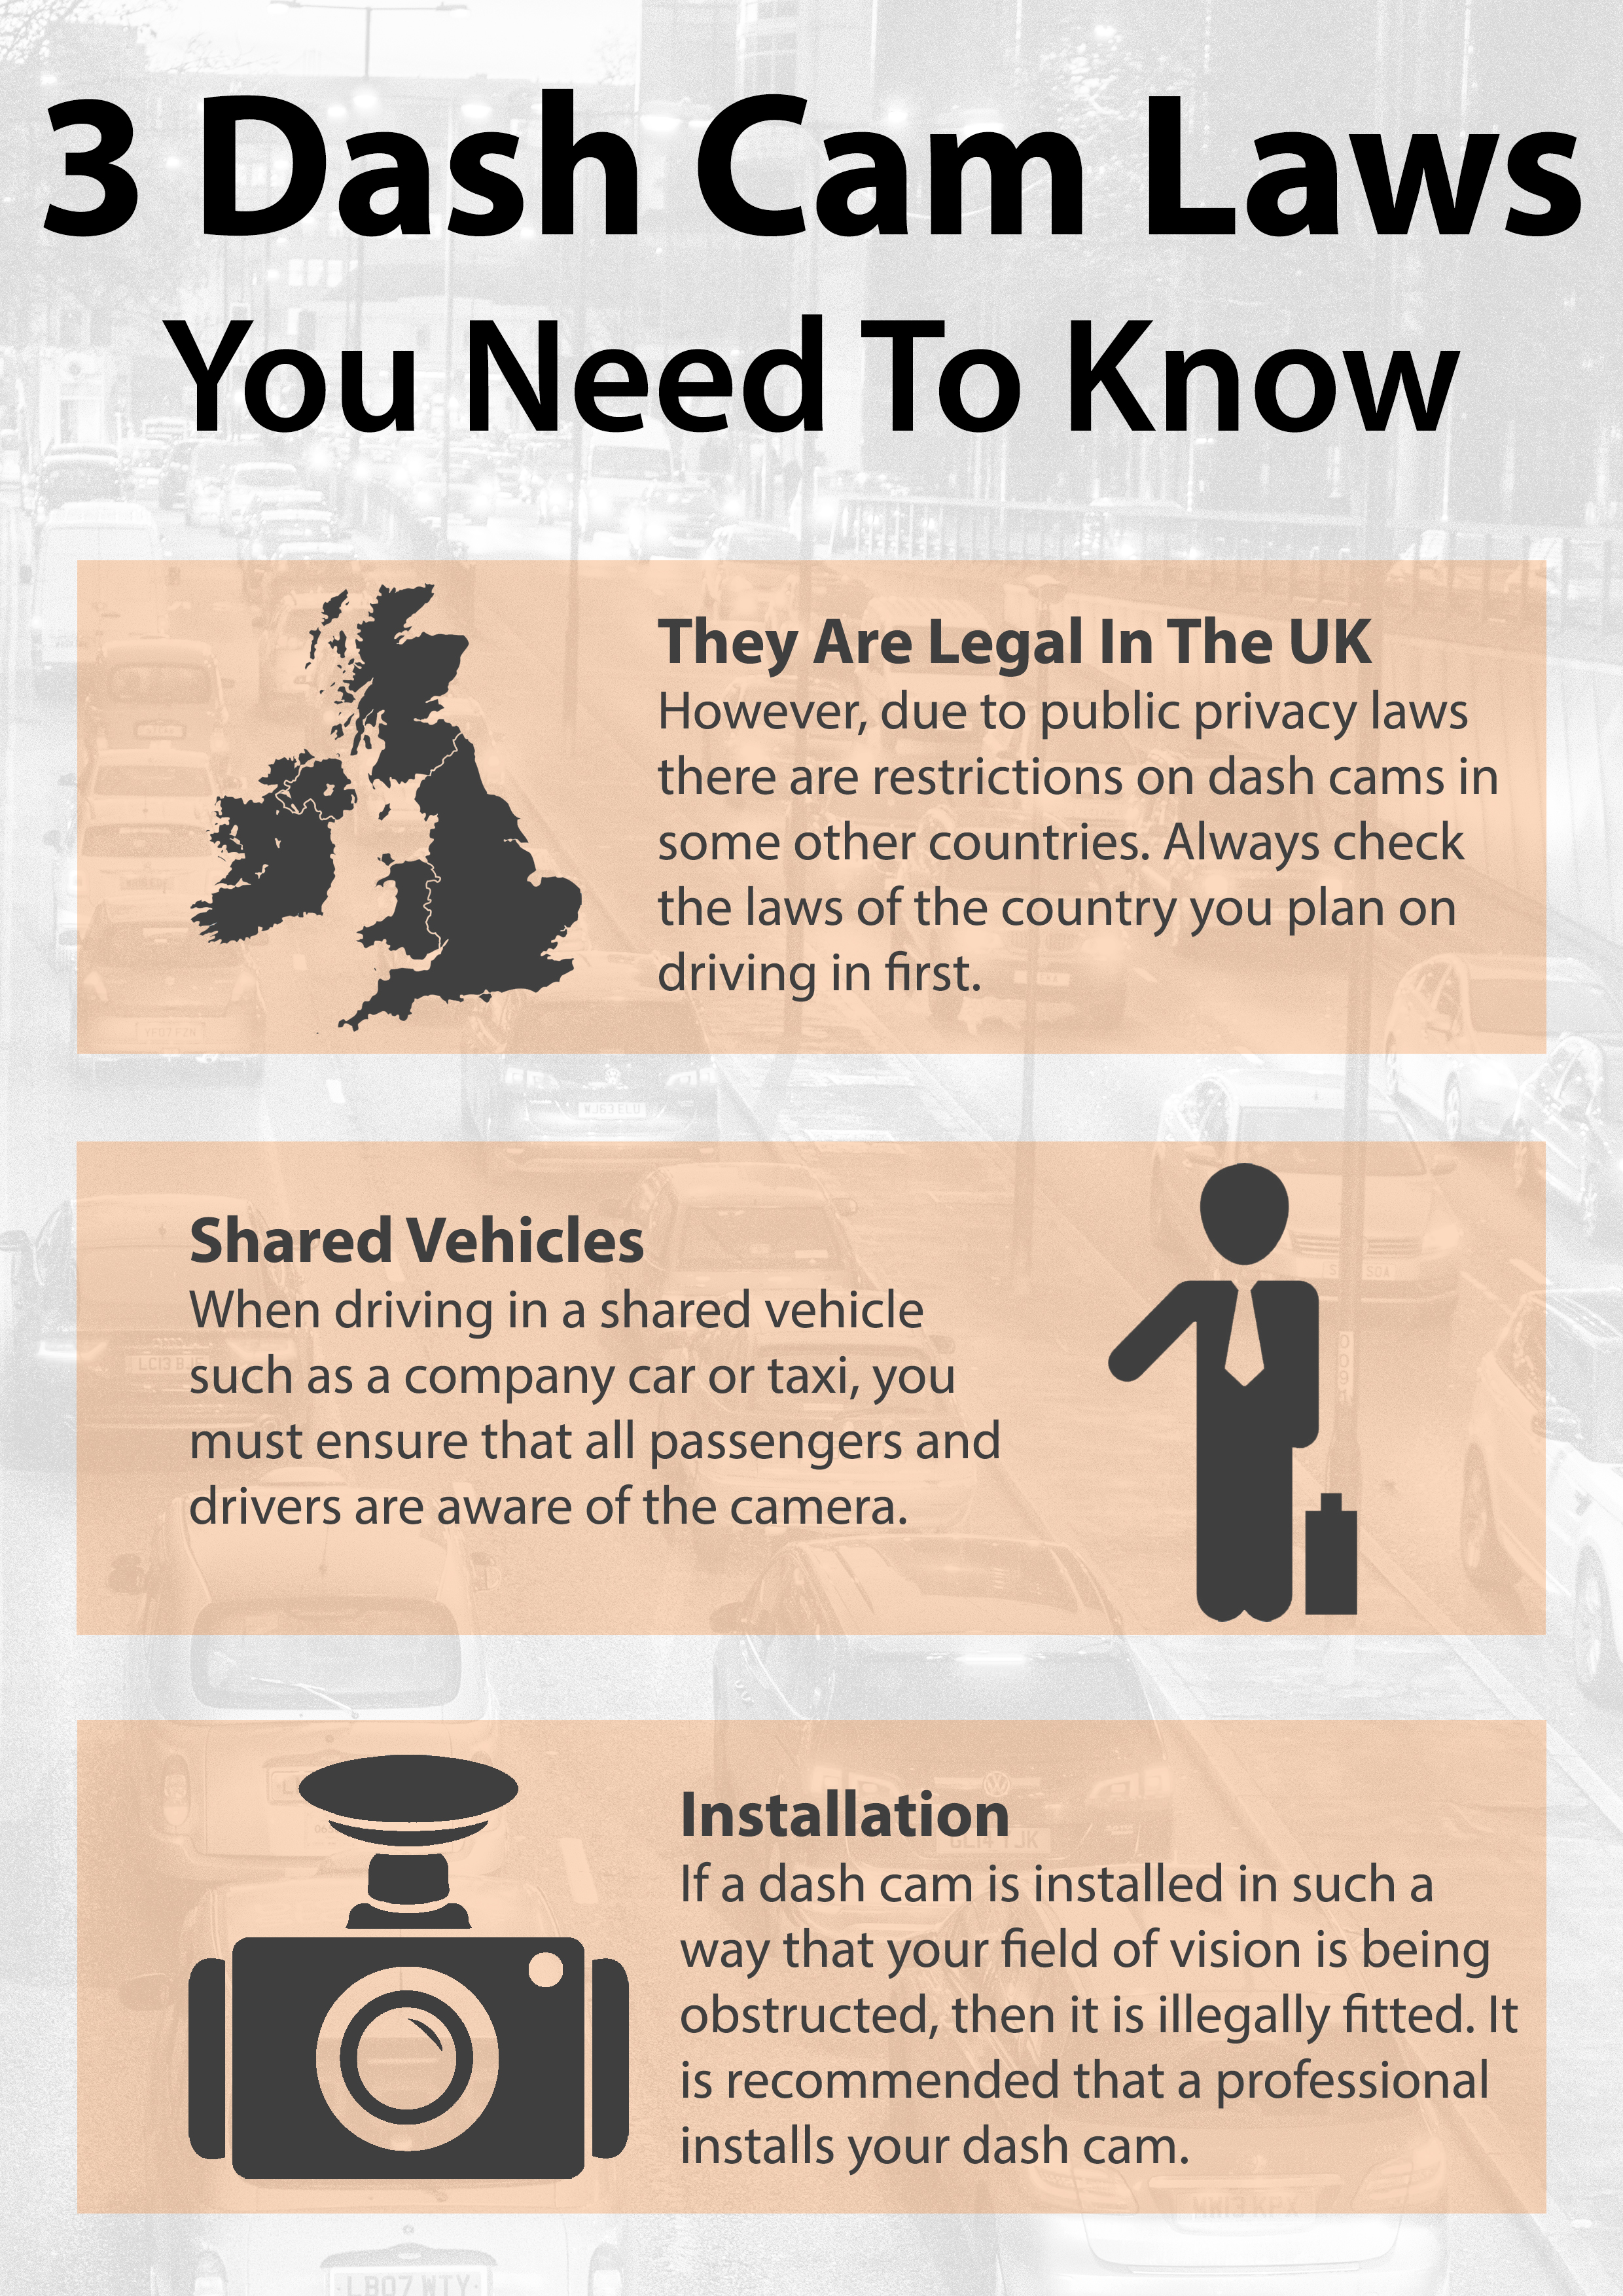 3 Dash Cam Laws You Need To Know